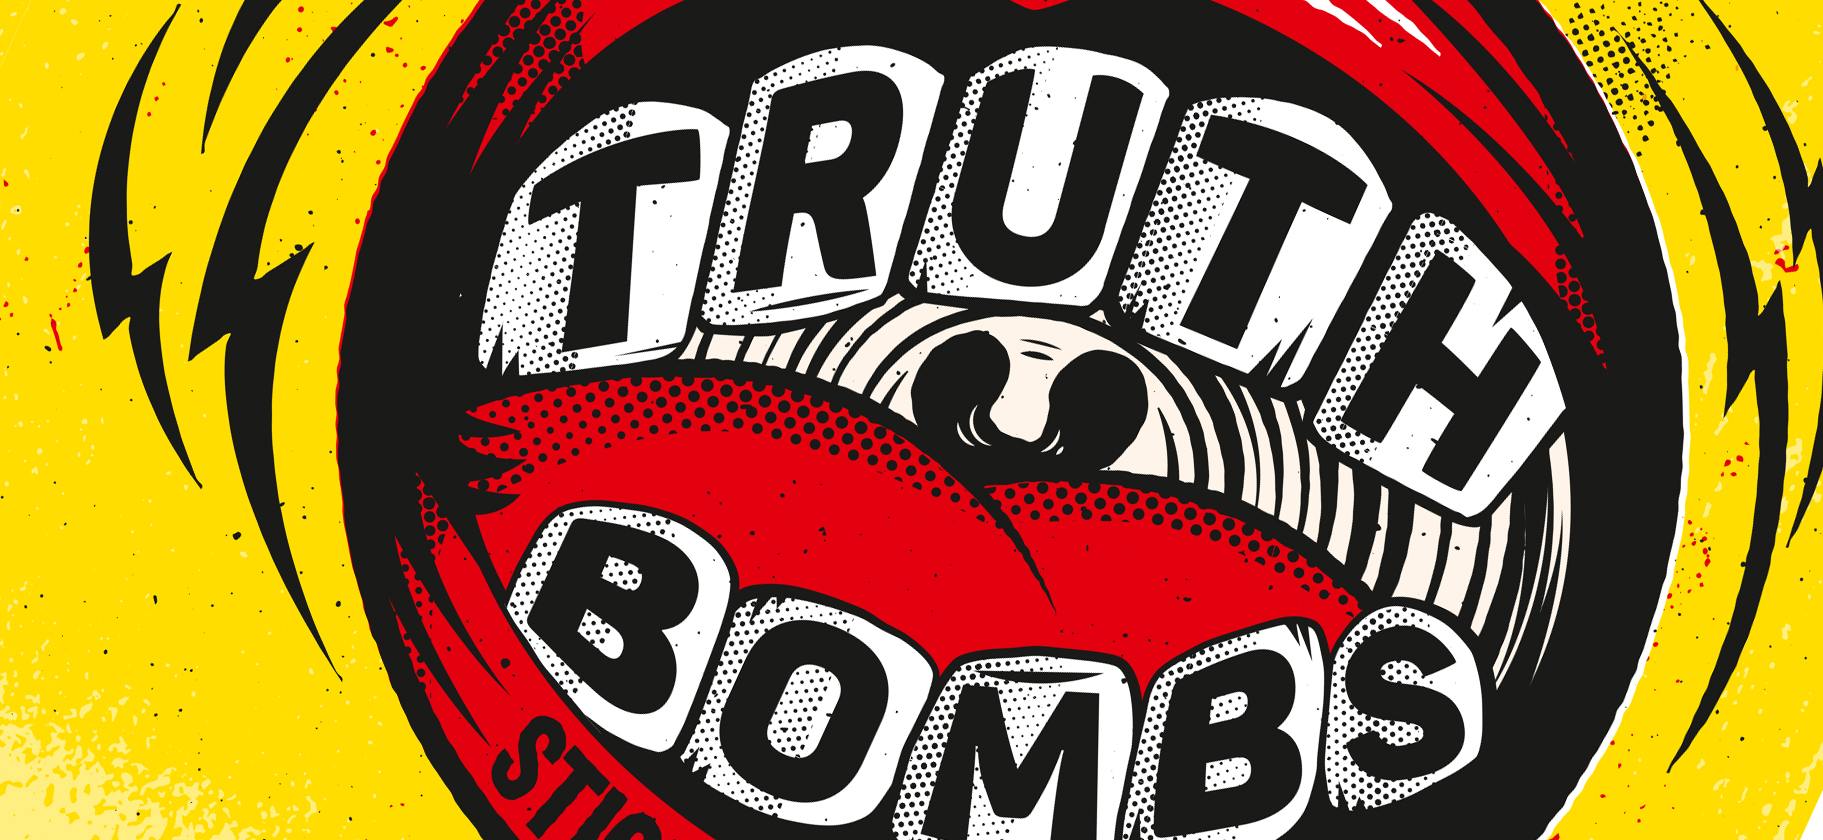 Truthbombs 185x185mm Cover v5 – outlines-1